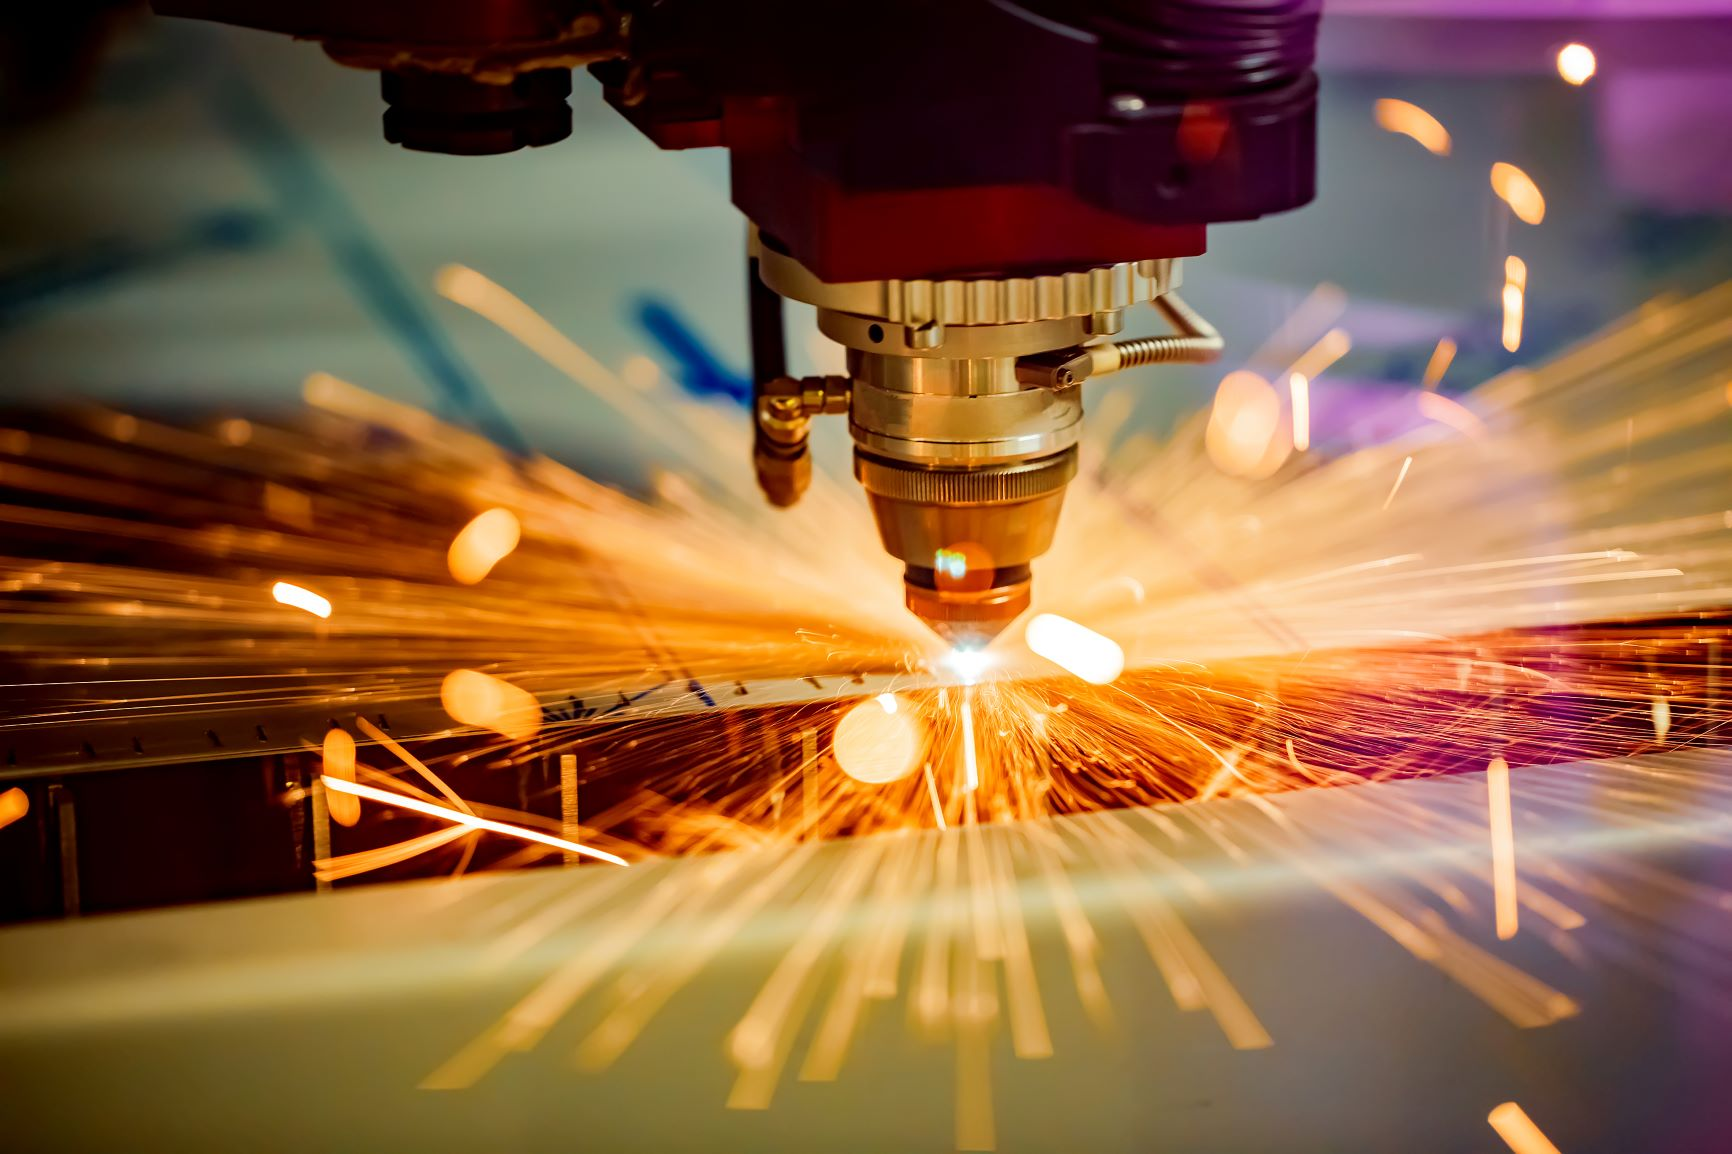 Laser re-manufacturing and large-scale metal 3D printing